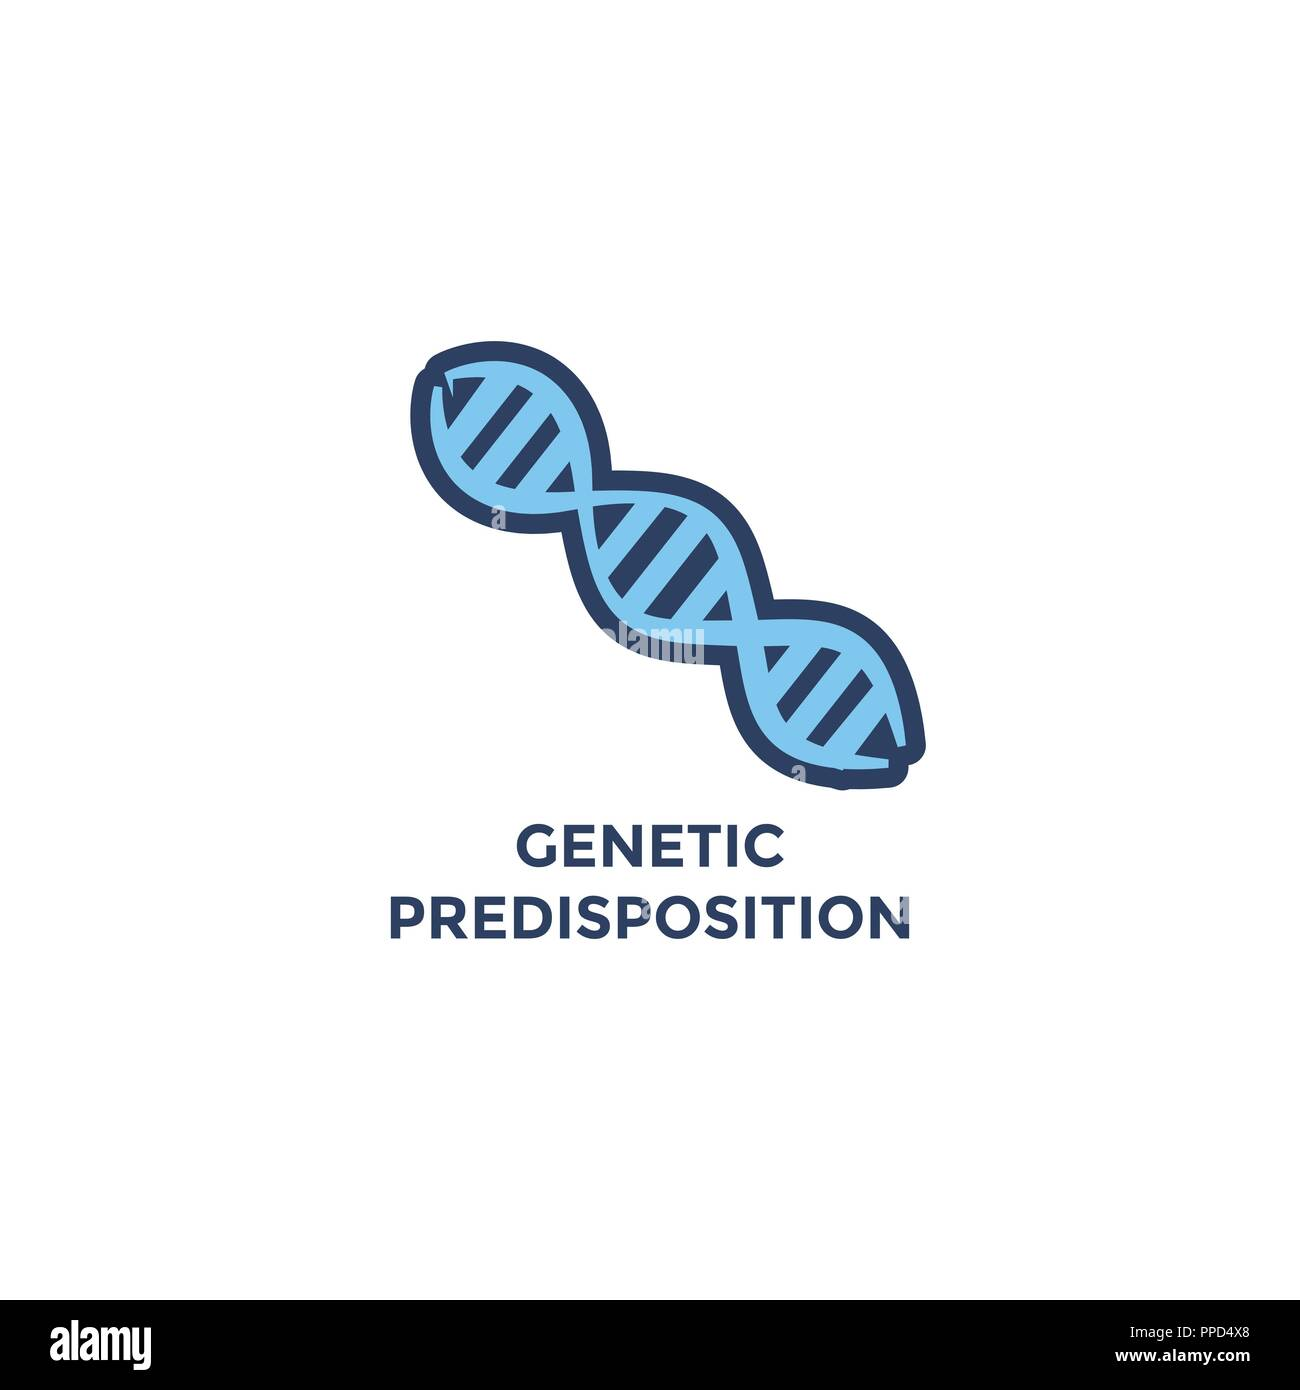 BMI - Body Mass Index Icon - DNA strand for Genetic Disposition - green and blue - Stock Image